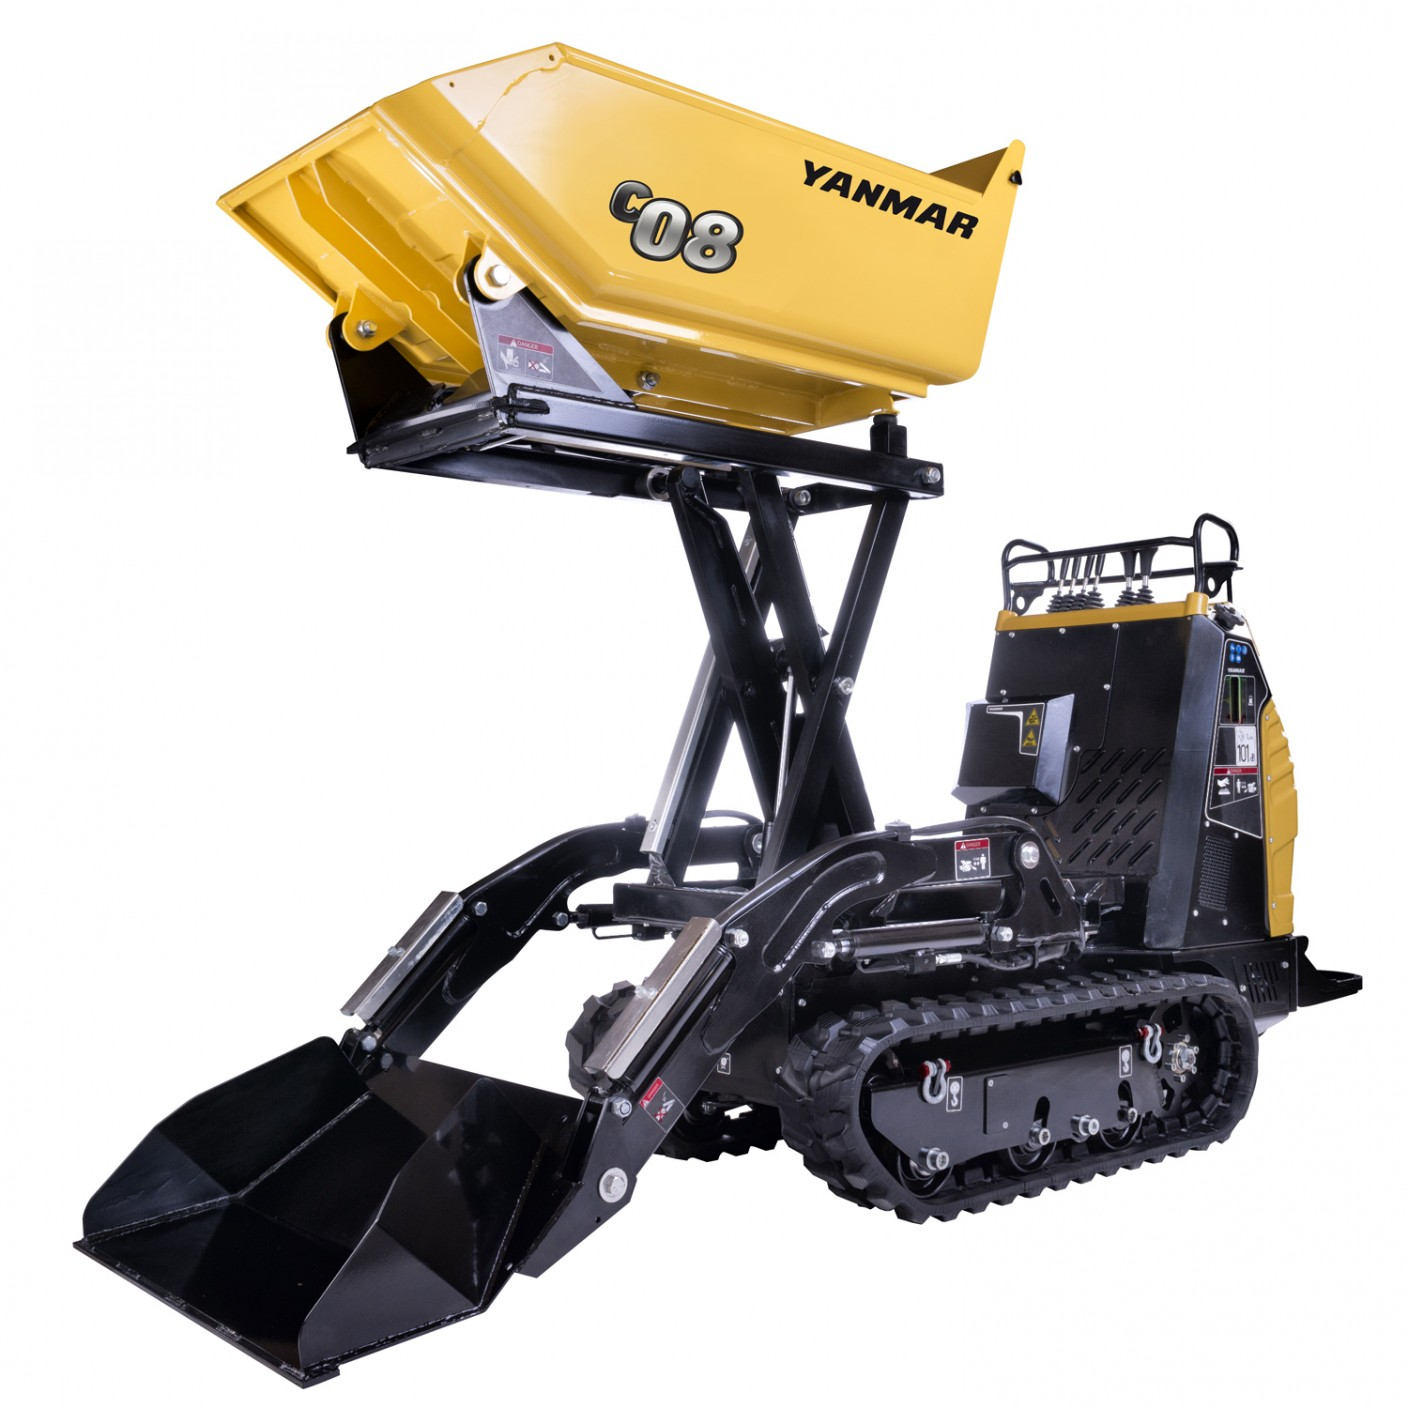 YANMAR CO8 HI-TIP